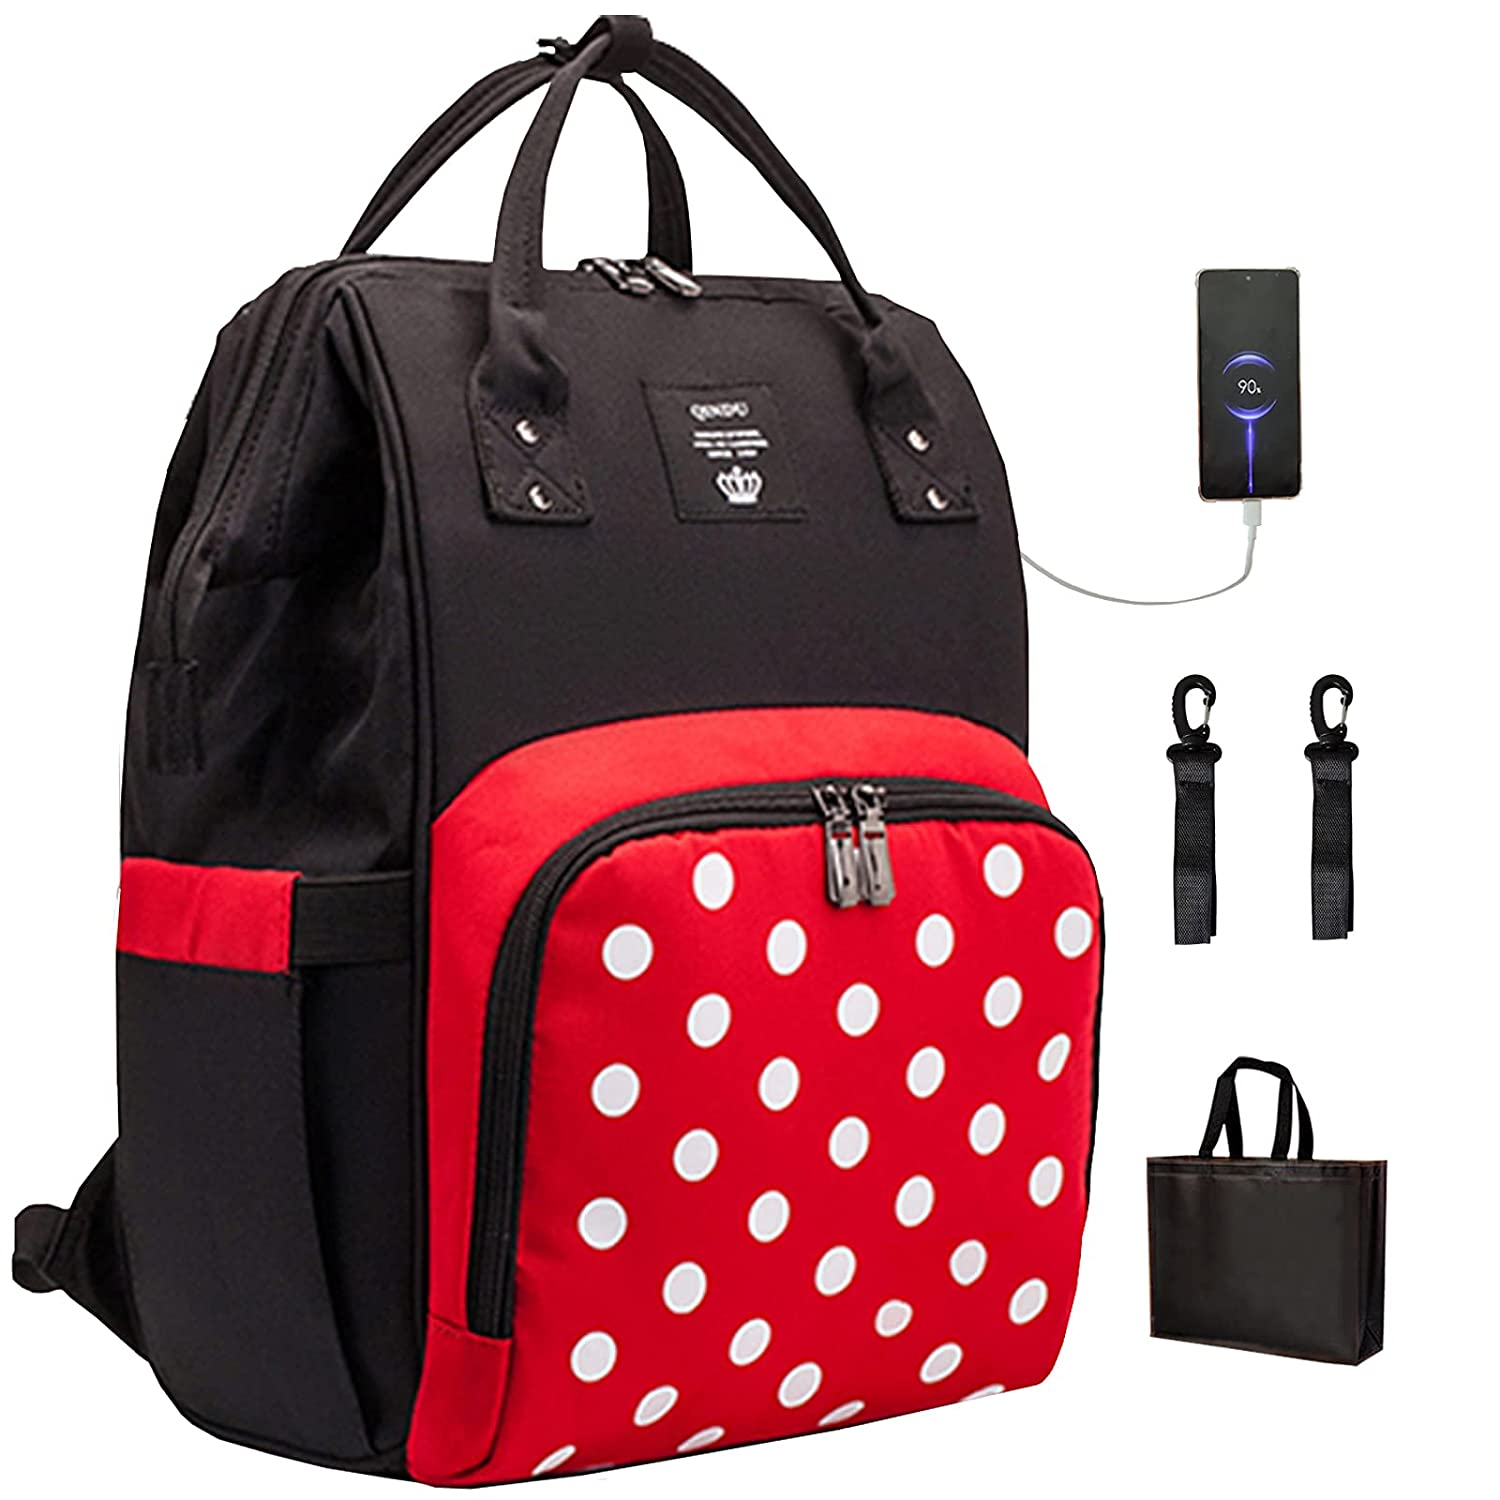 Cute Diaper Bag Backpack for Baby Girls/Boys,Cinkerr Personalized Polka Dot Large Capacity Travel Backpack with USB Port for New Moms/Dads,Baby Shower Gifts,Red White Printed Fashion Waterproof Tote